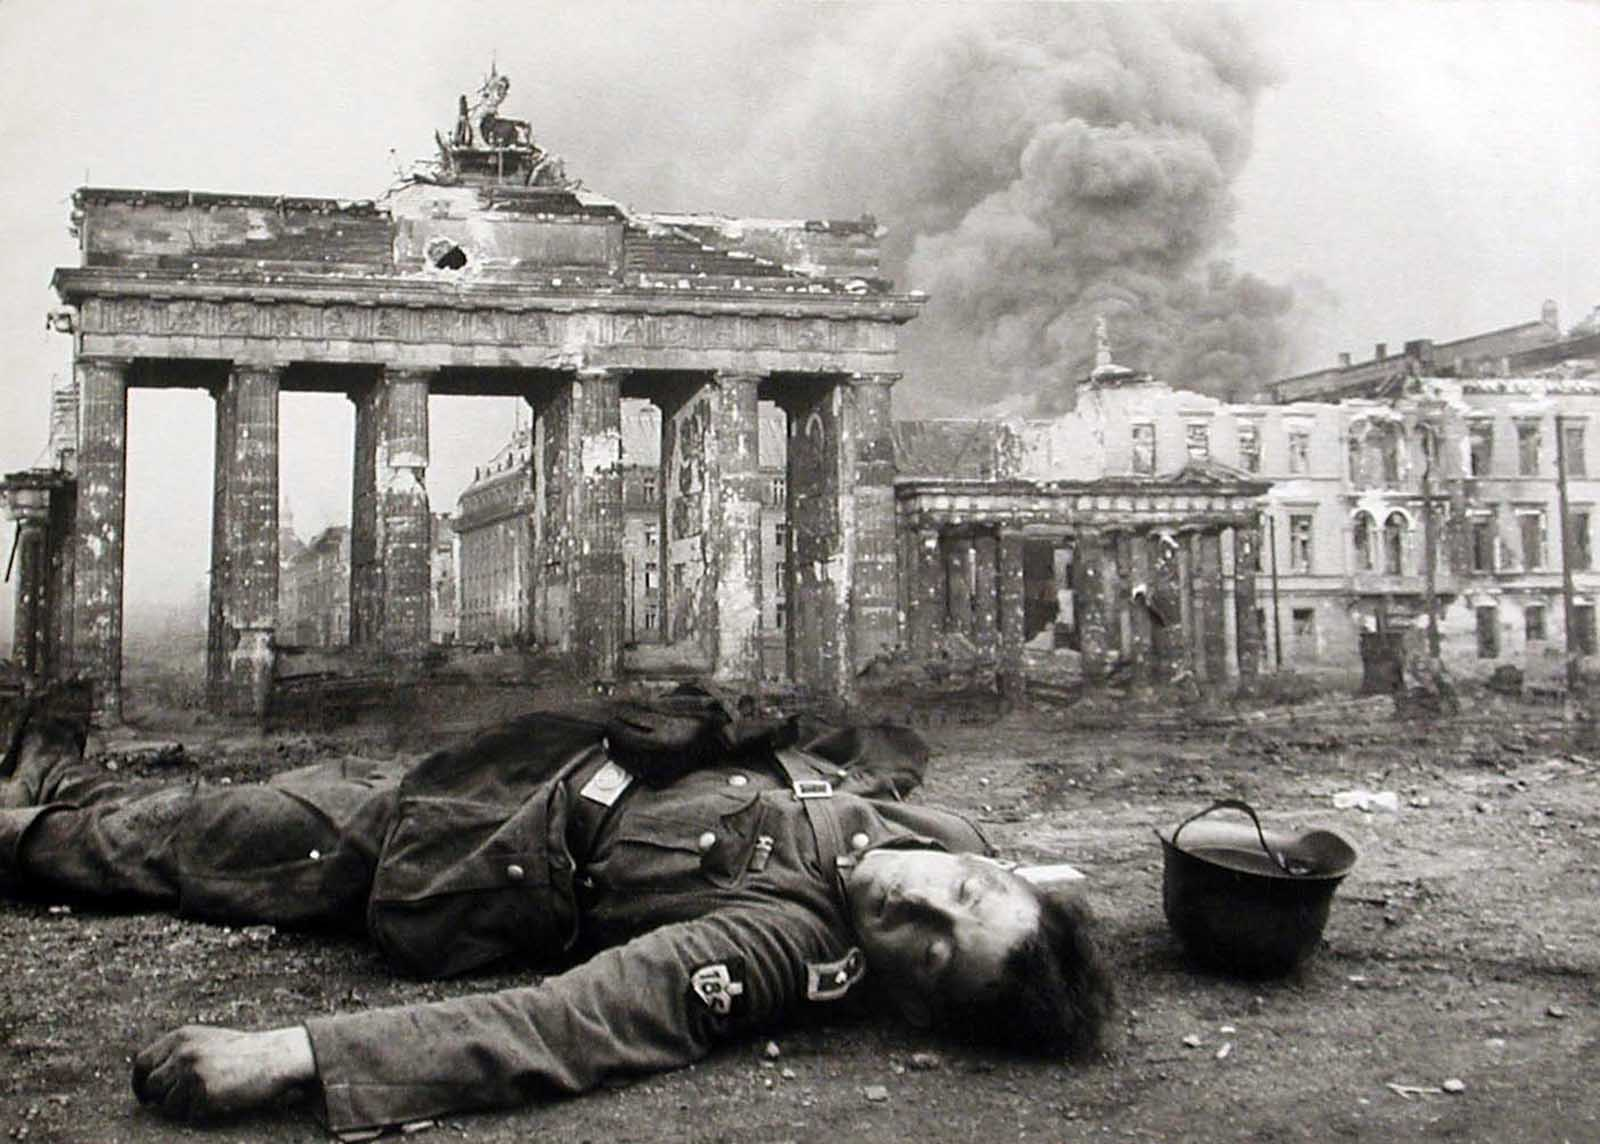 An iconic picture. The Fall of Nazi Germany.